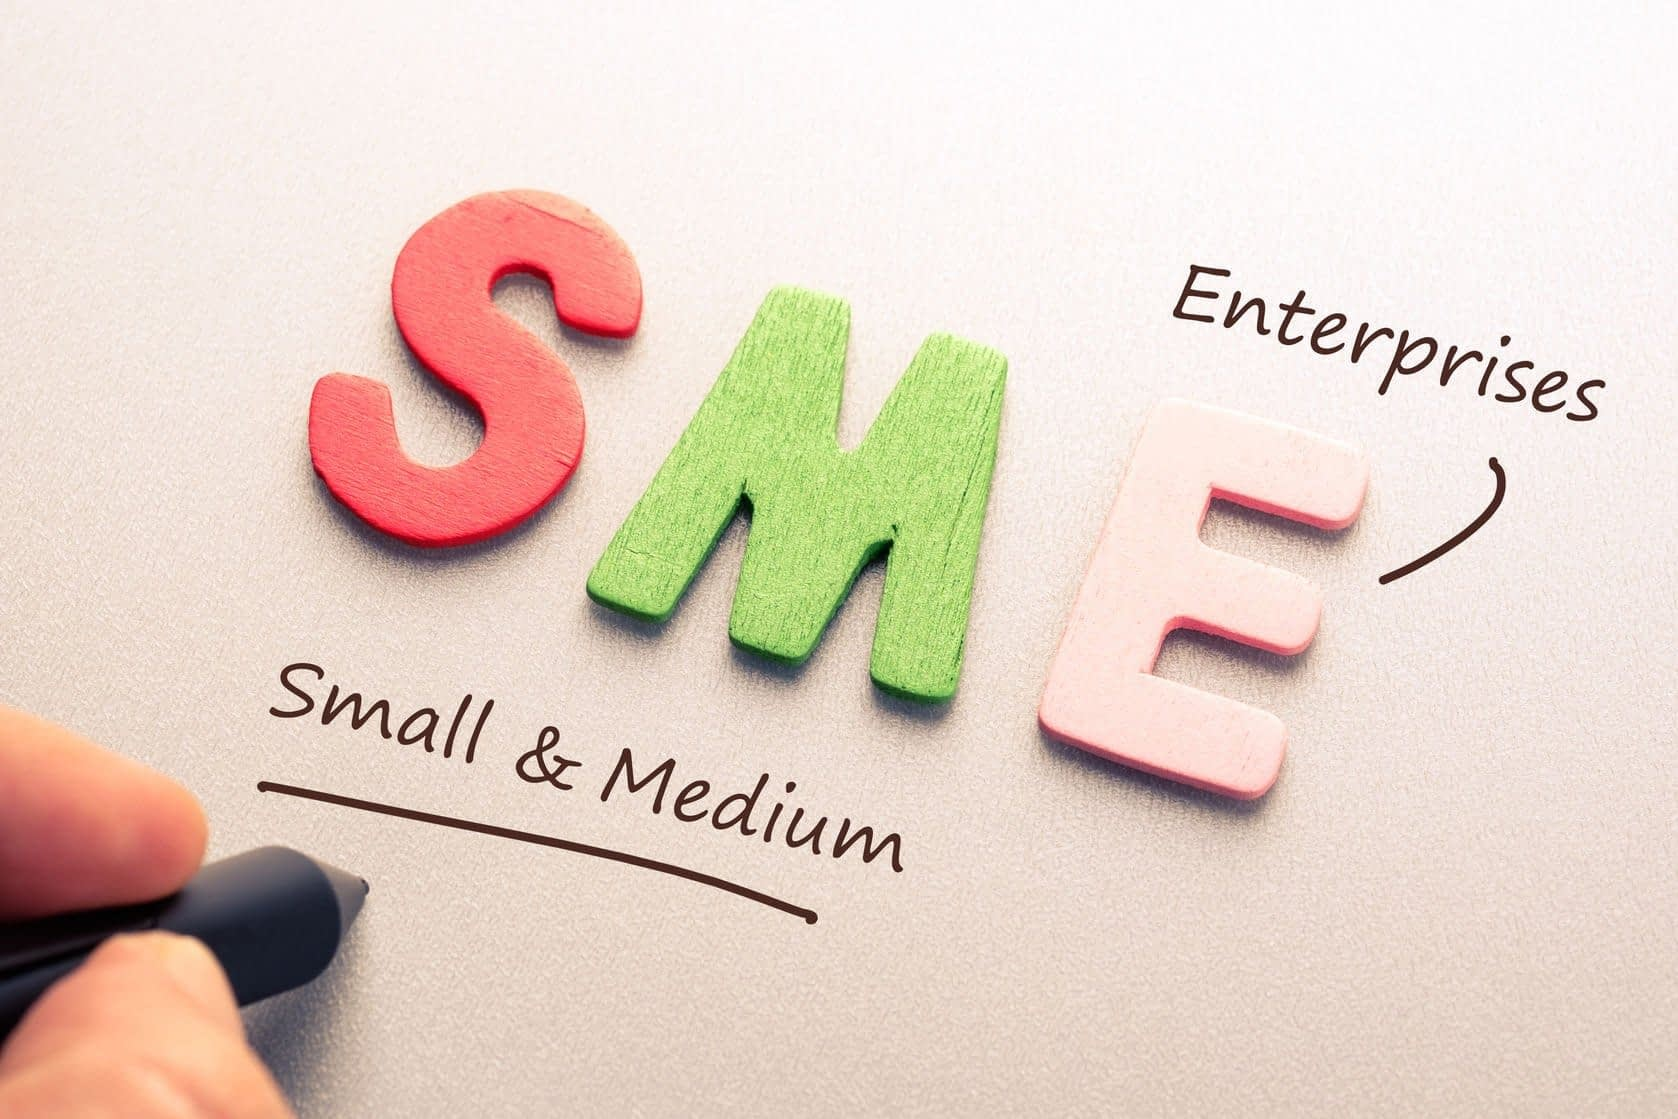 KoreConX partners with SME Brokers